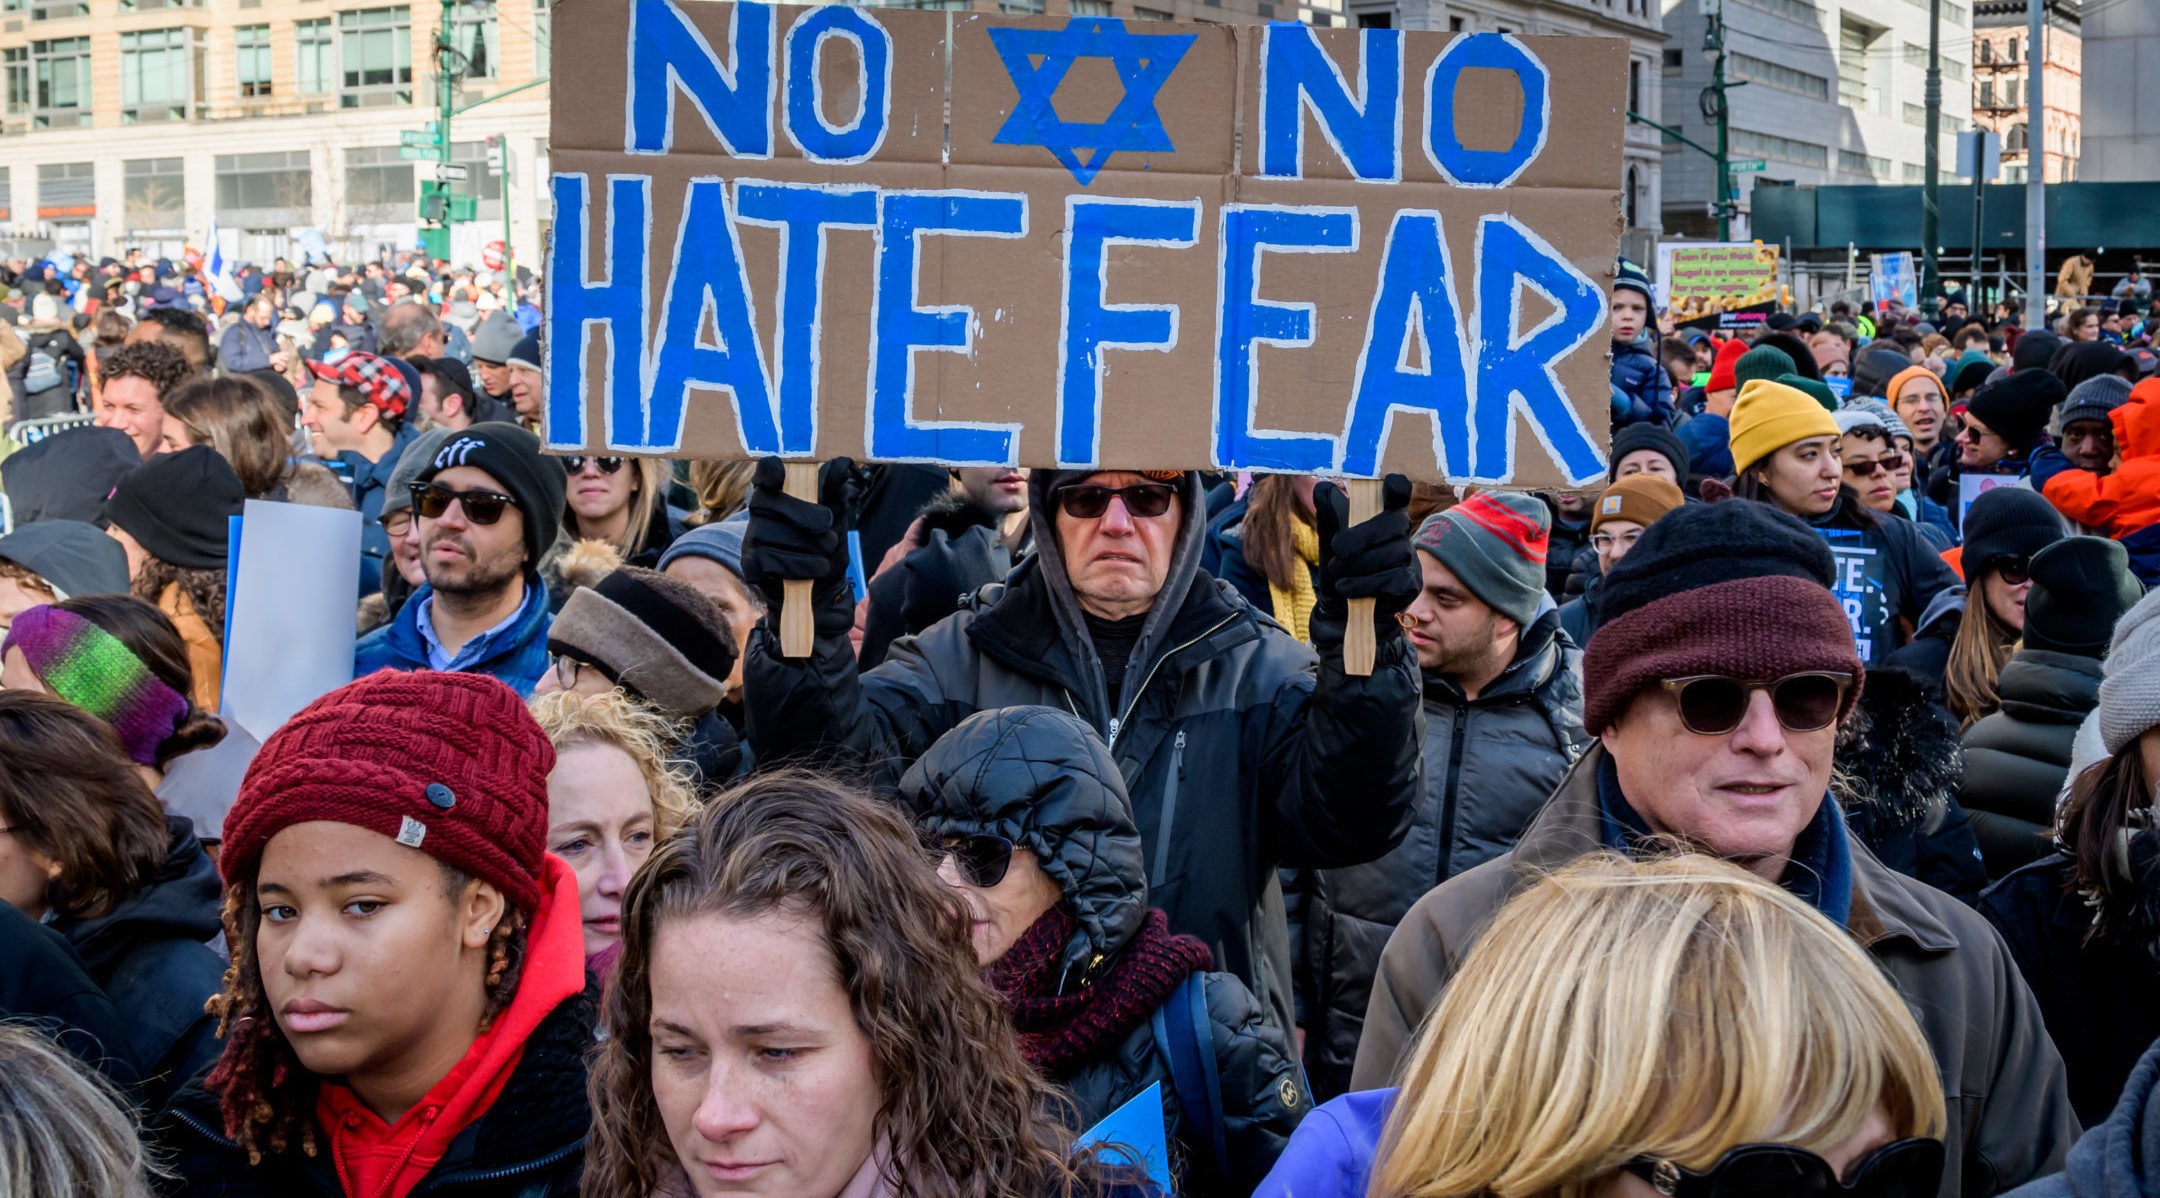 Almost all American Jews say anti-Semitism is a problem, according to a new poll. Half...